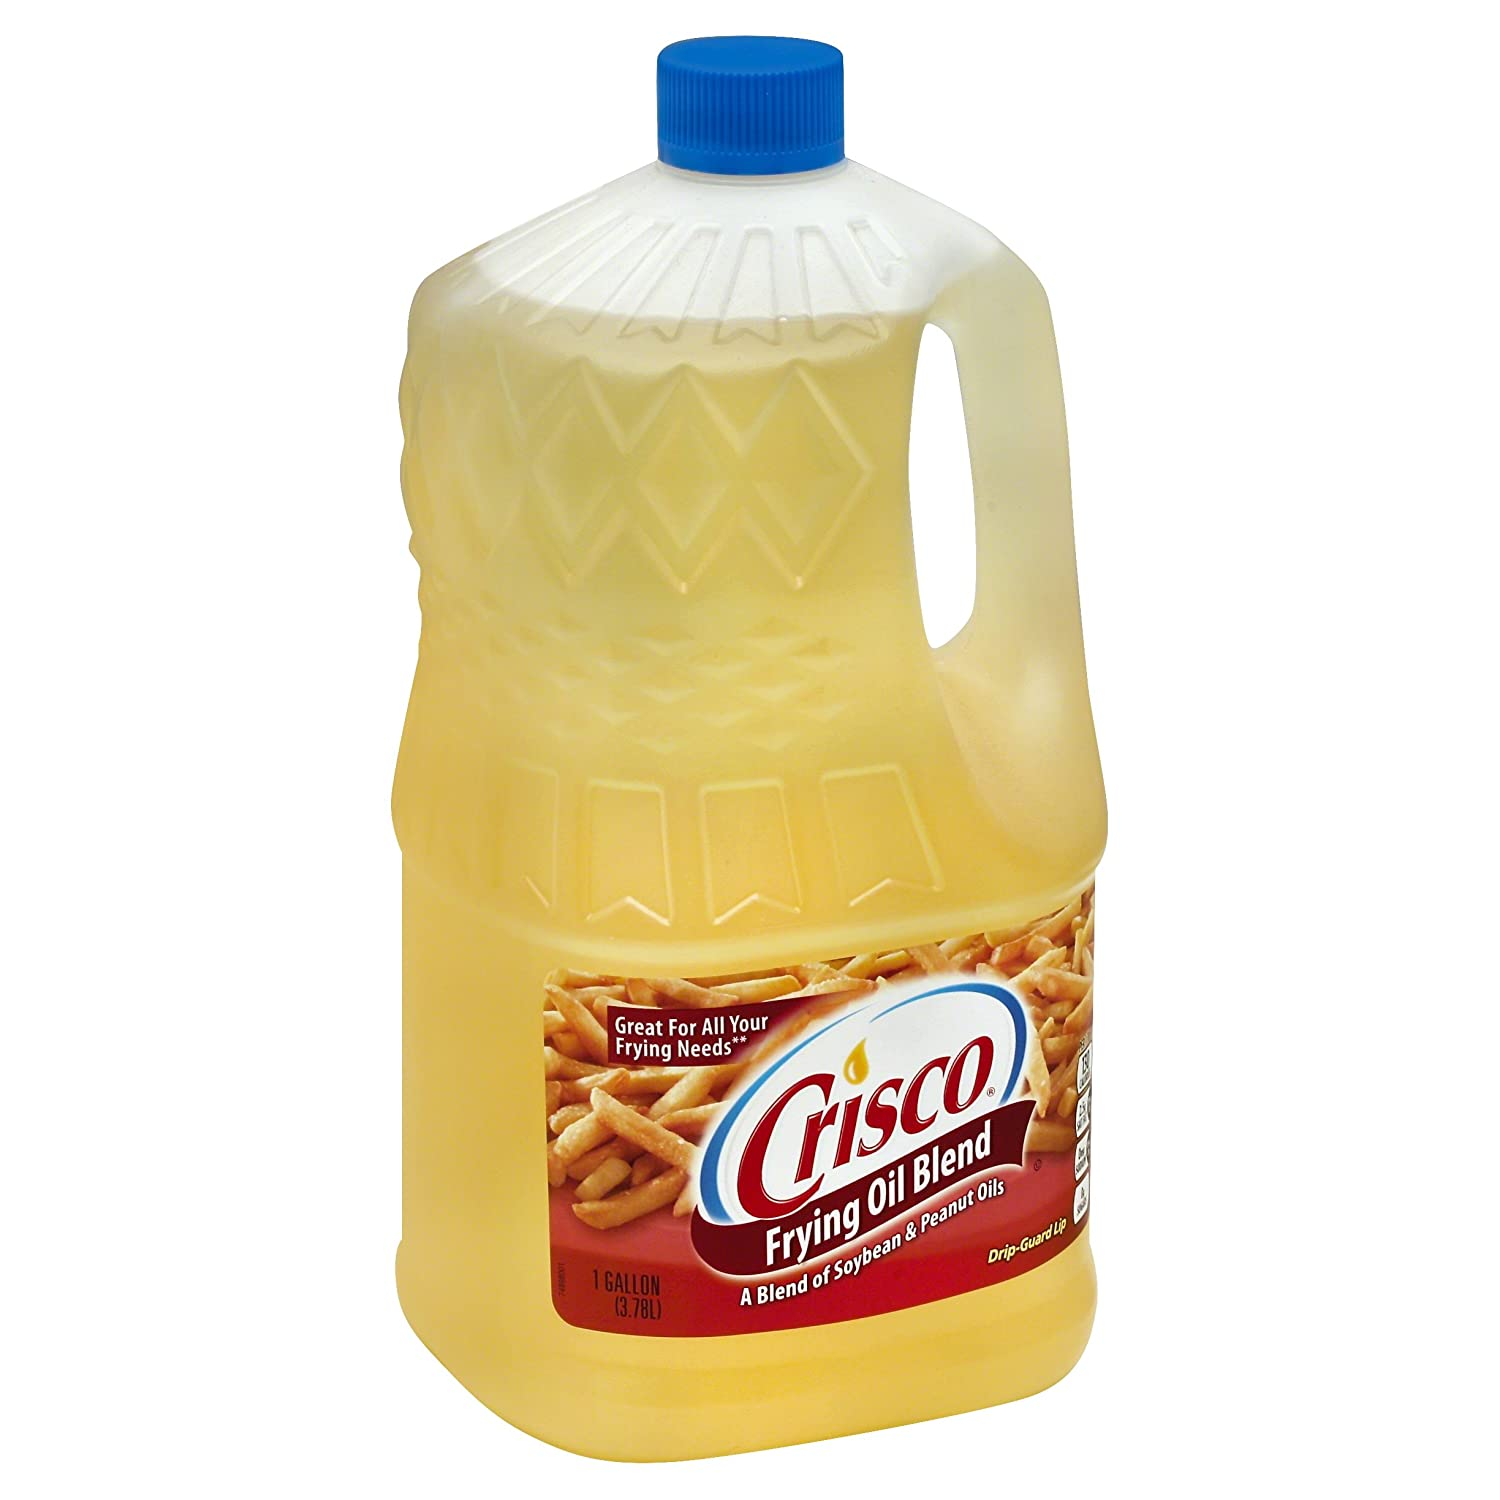 Crisco Frying Oil Blend, 1 Gallon